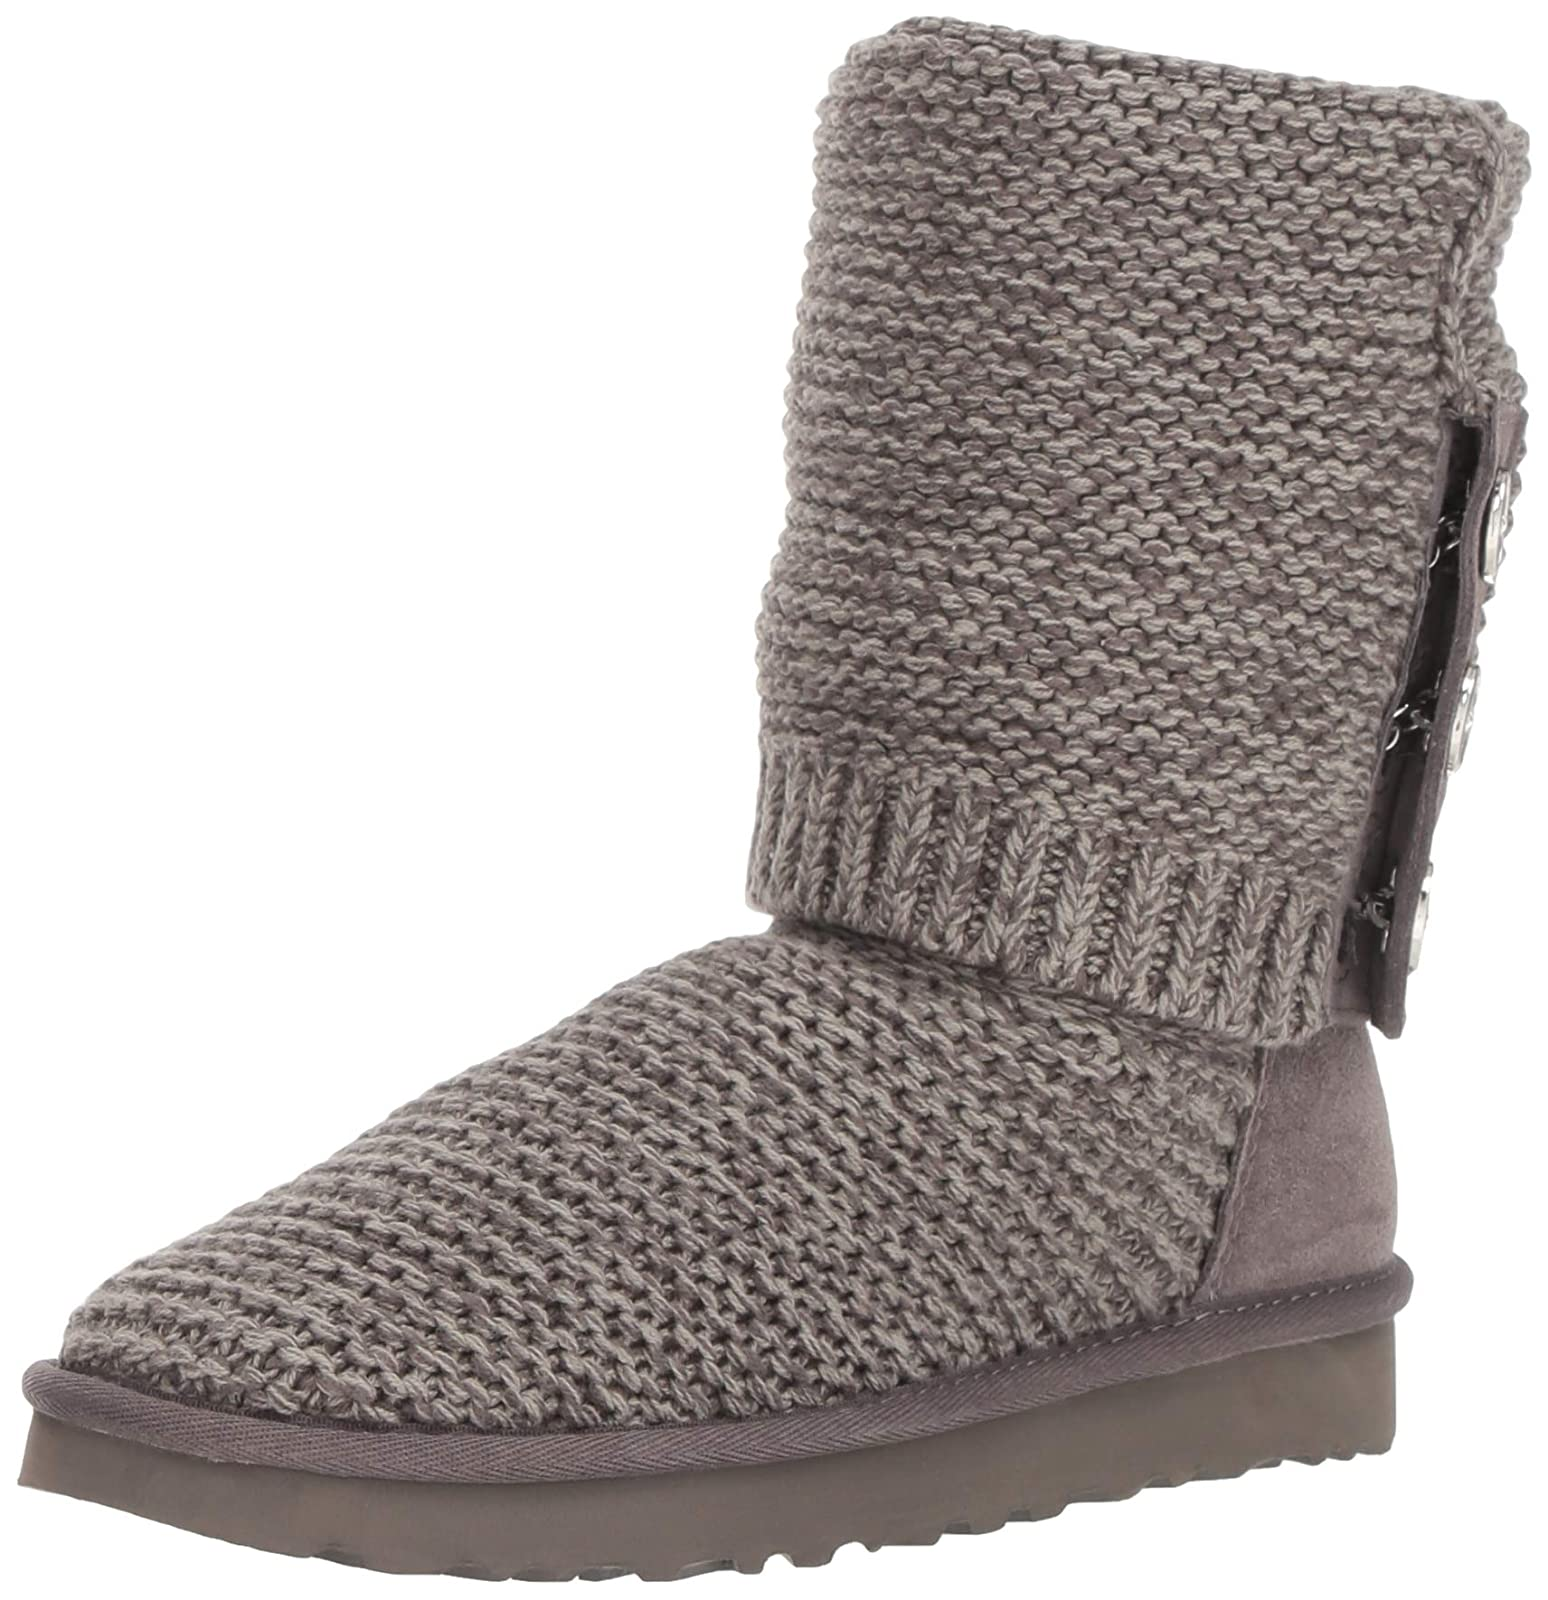 UGG Women's W PURL Cardy Knit Fashion Boot 1094949 - 1